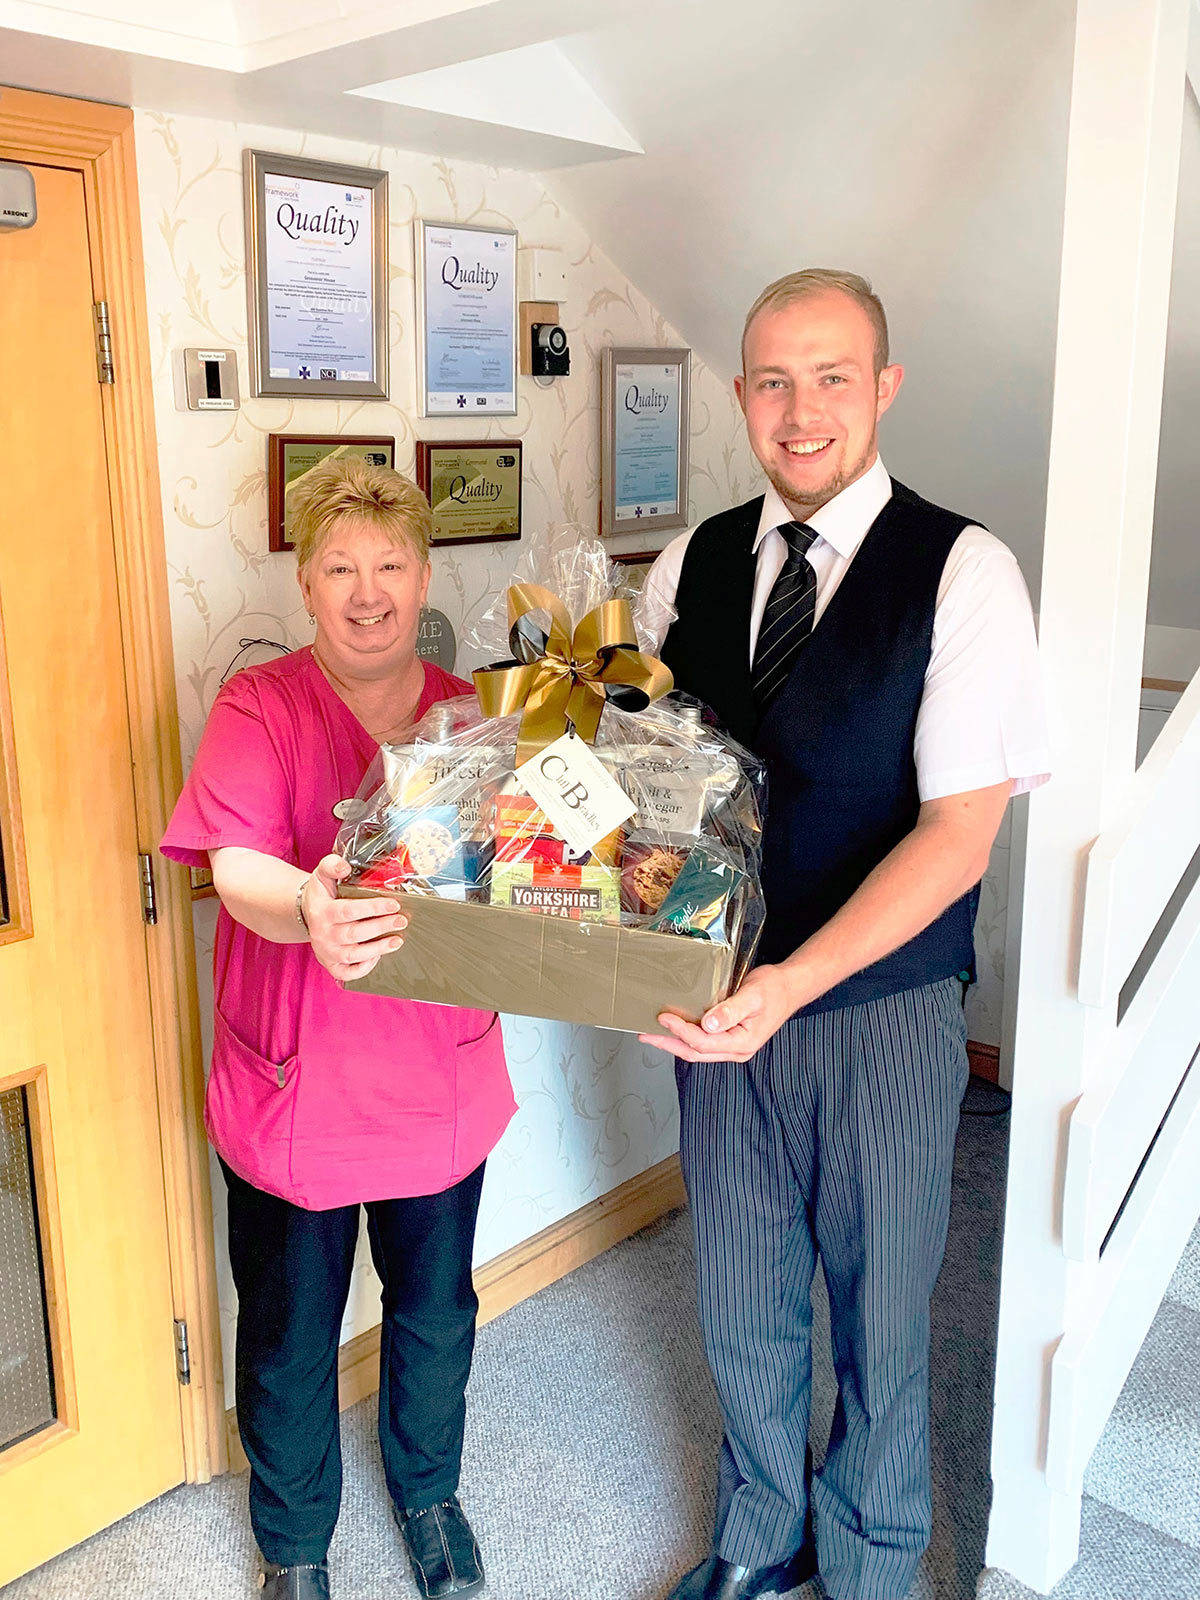 Ed presents a hamper to Grosevenor House Care Home (1st August 2019)